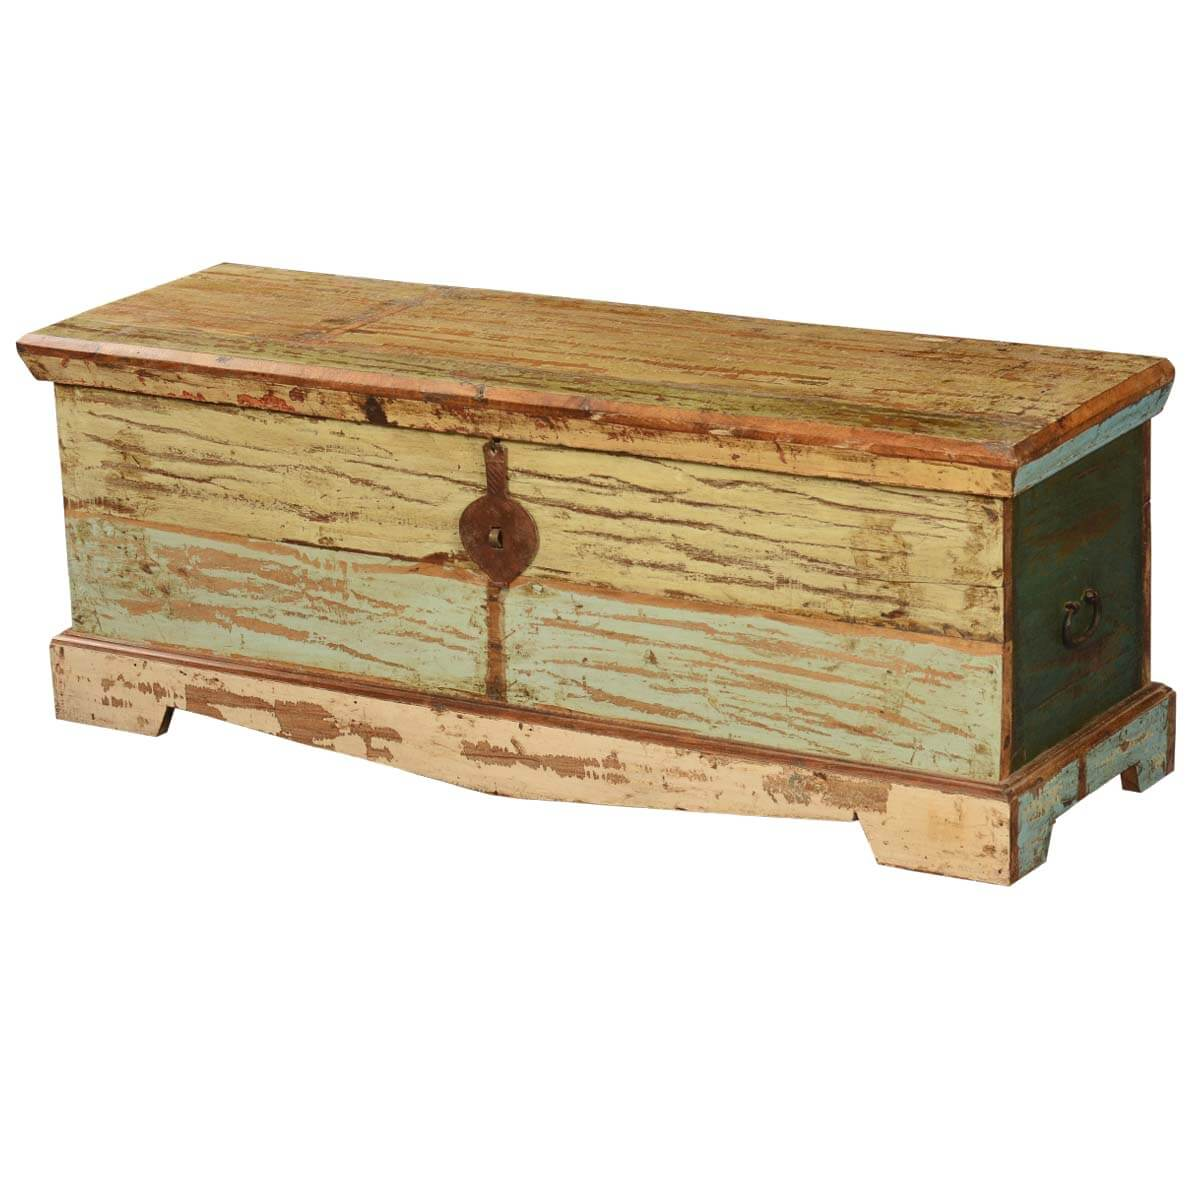 Attic treasure reclaimed wood coffee table chest storage trunk Coffee table chest with storage